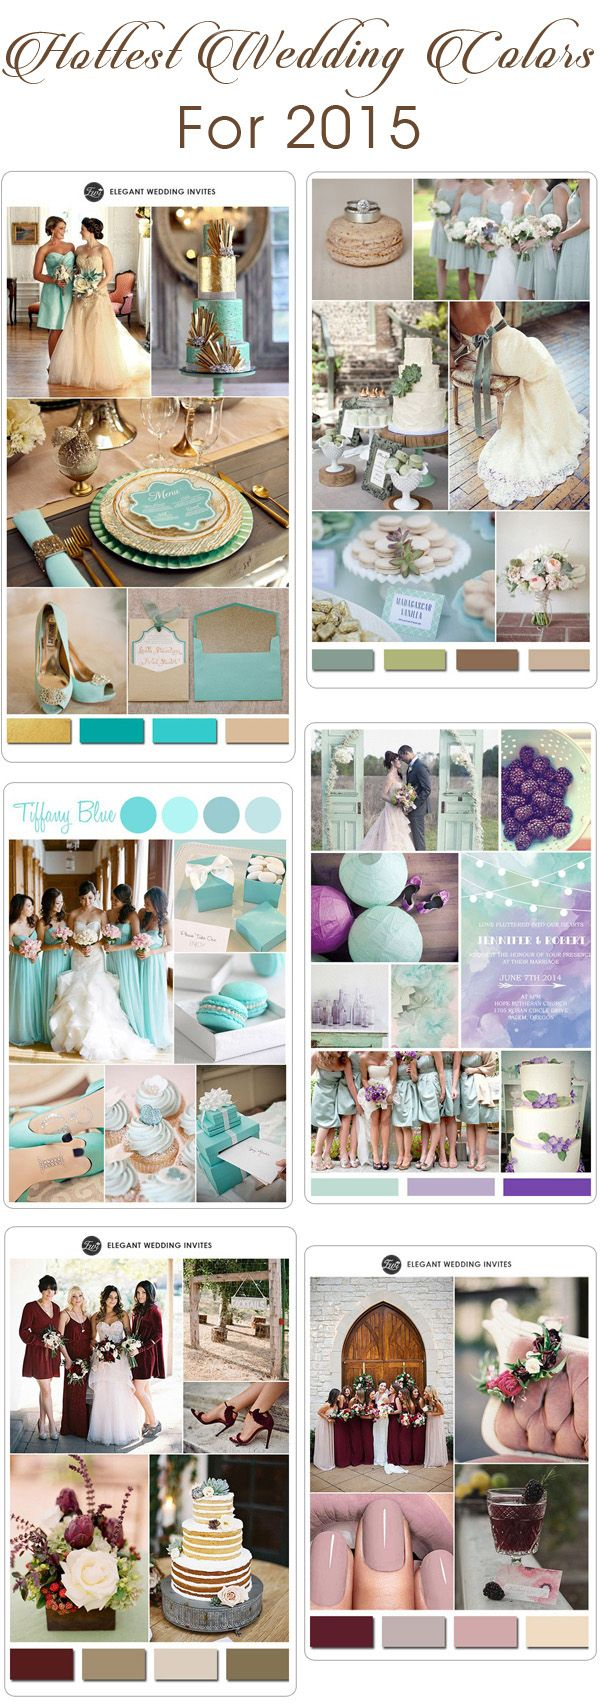 top 10 most popular wedding color ideas for 2015 from #weddingcolors